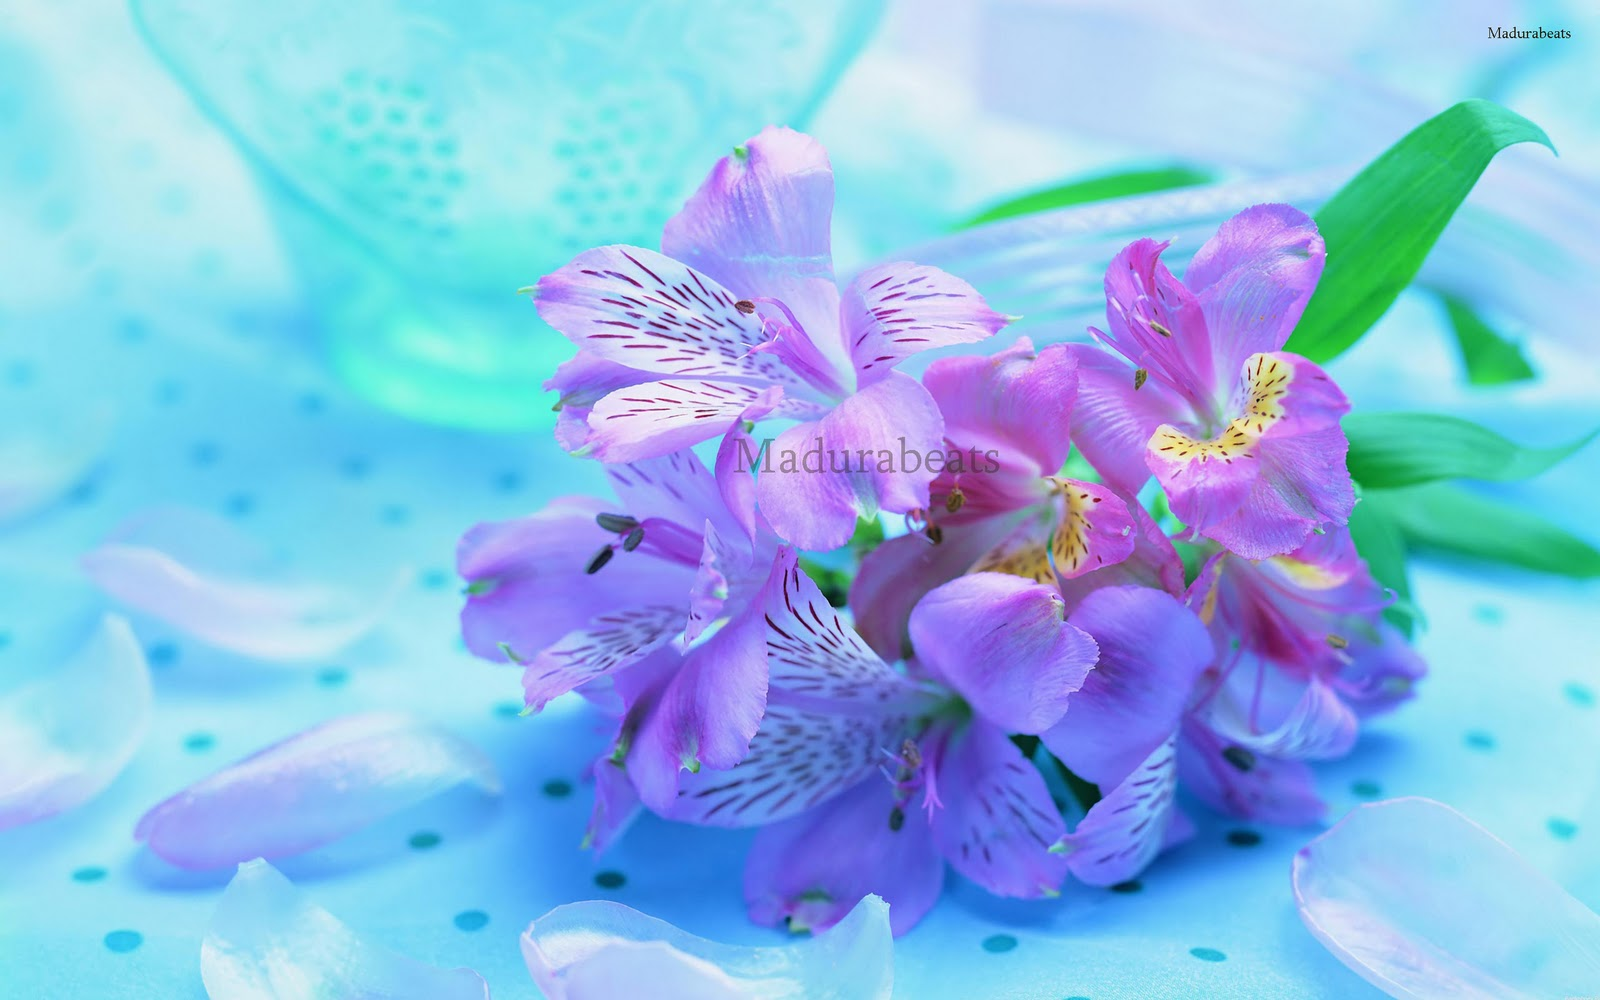 Flower images, Wide screen wallpapers,fresh flowers,Beautiful flowers,Beautiful Fresh Purple Flowers Blue background